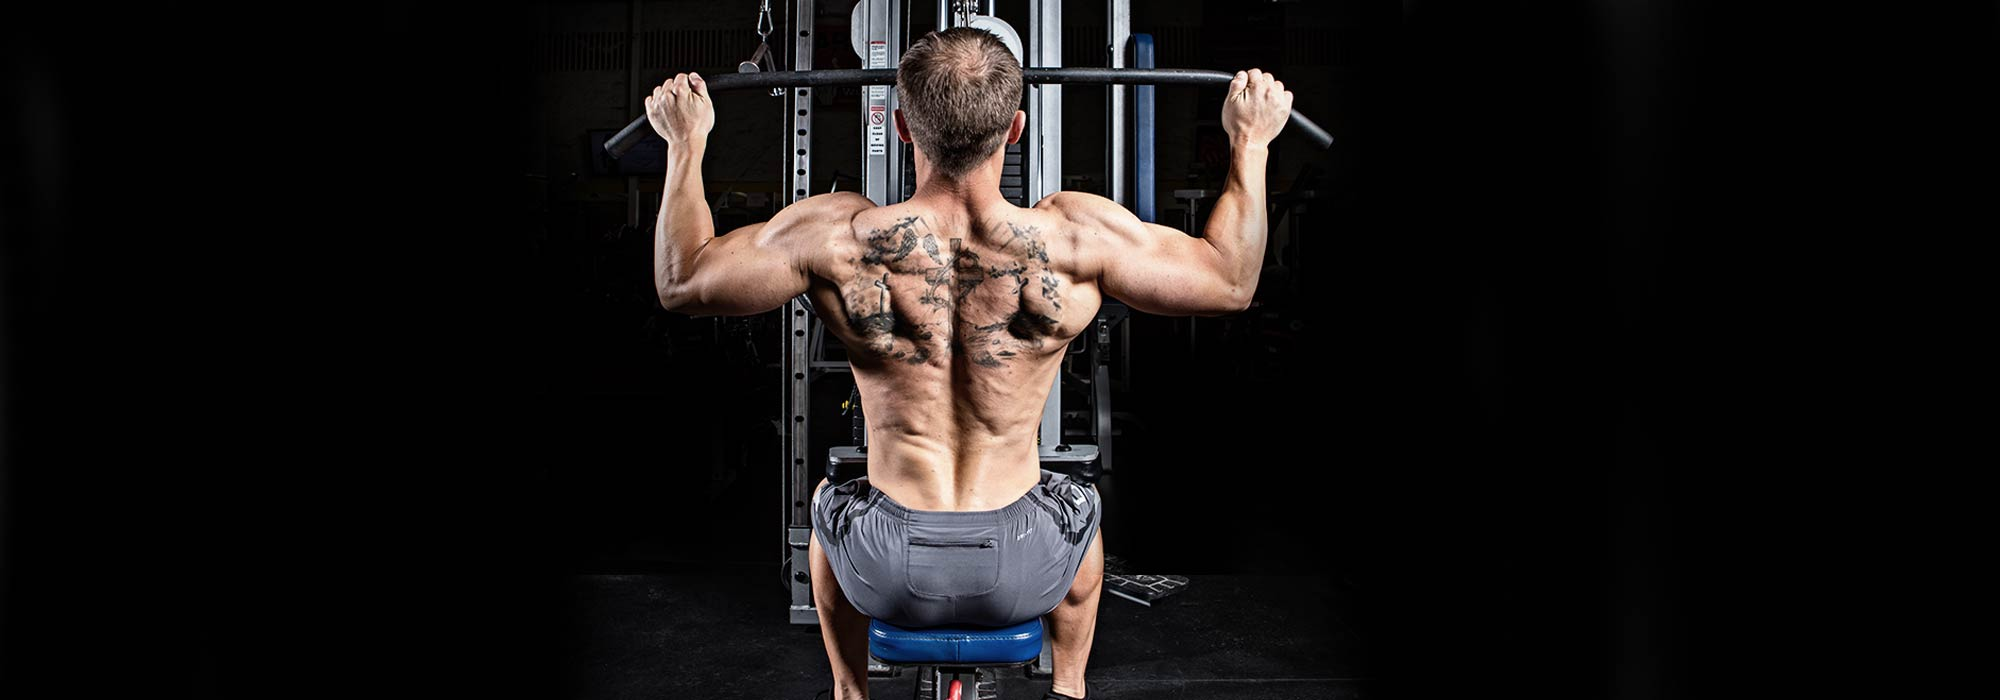 The Pull-Up Row - A Unique Bodyweight Back Exercise You Can Do Almost Anywhere